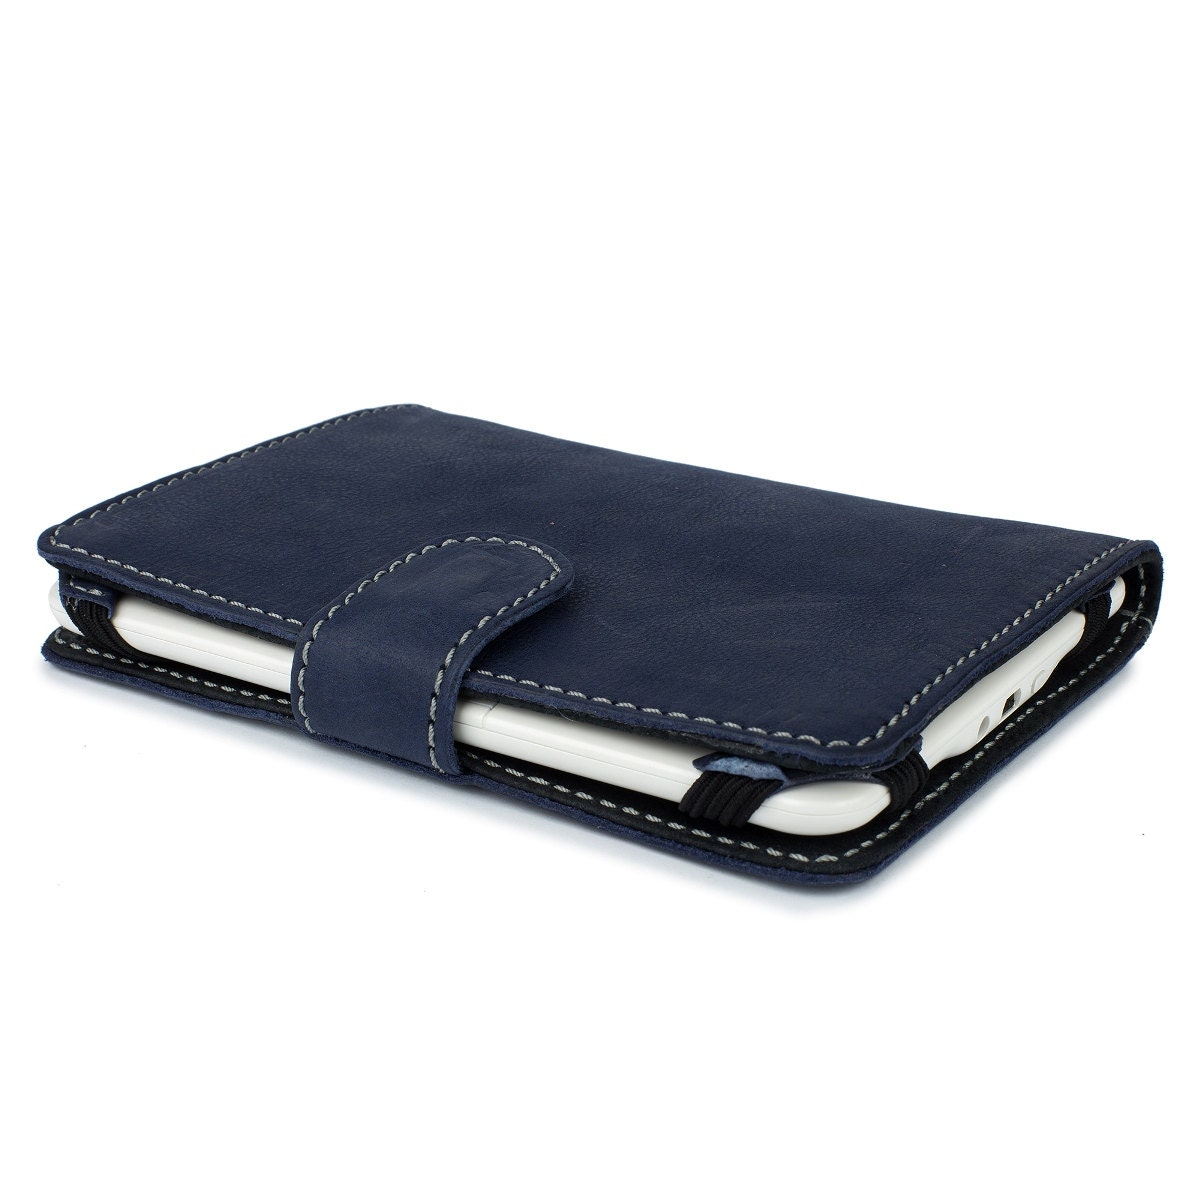 Personalized Kindle Cover Leather Kindle Covers Tablet Cover